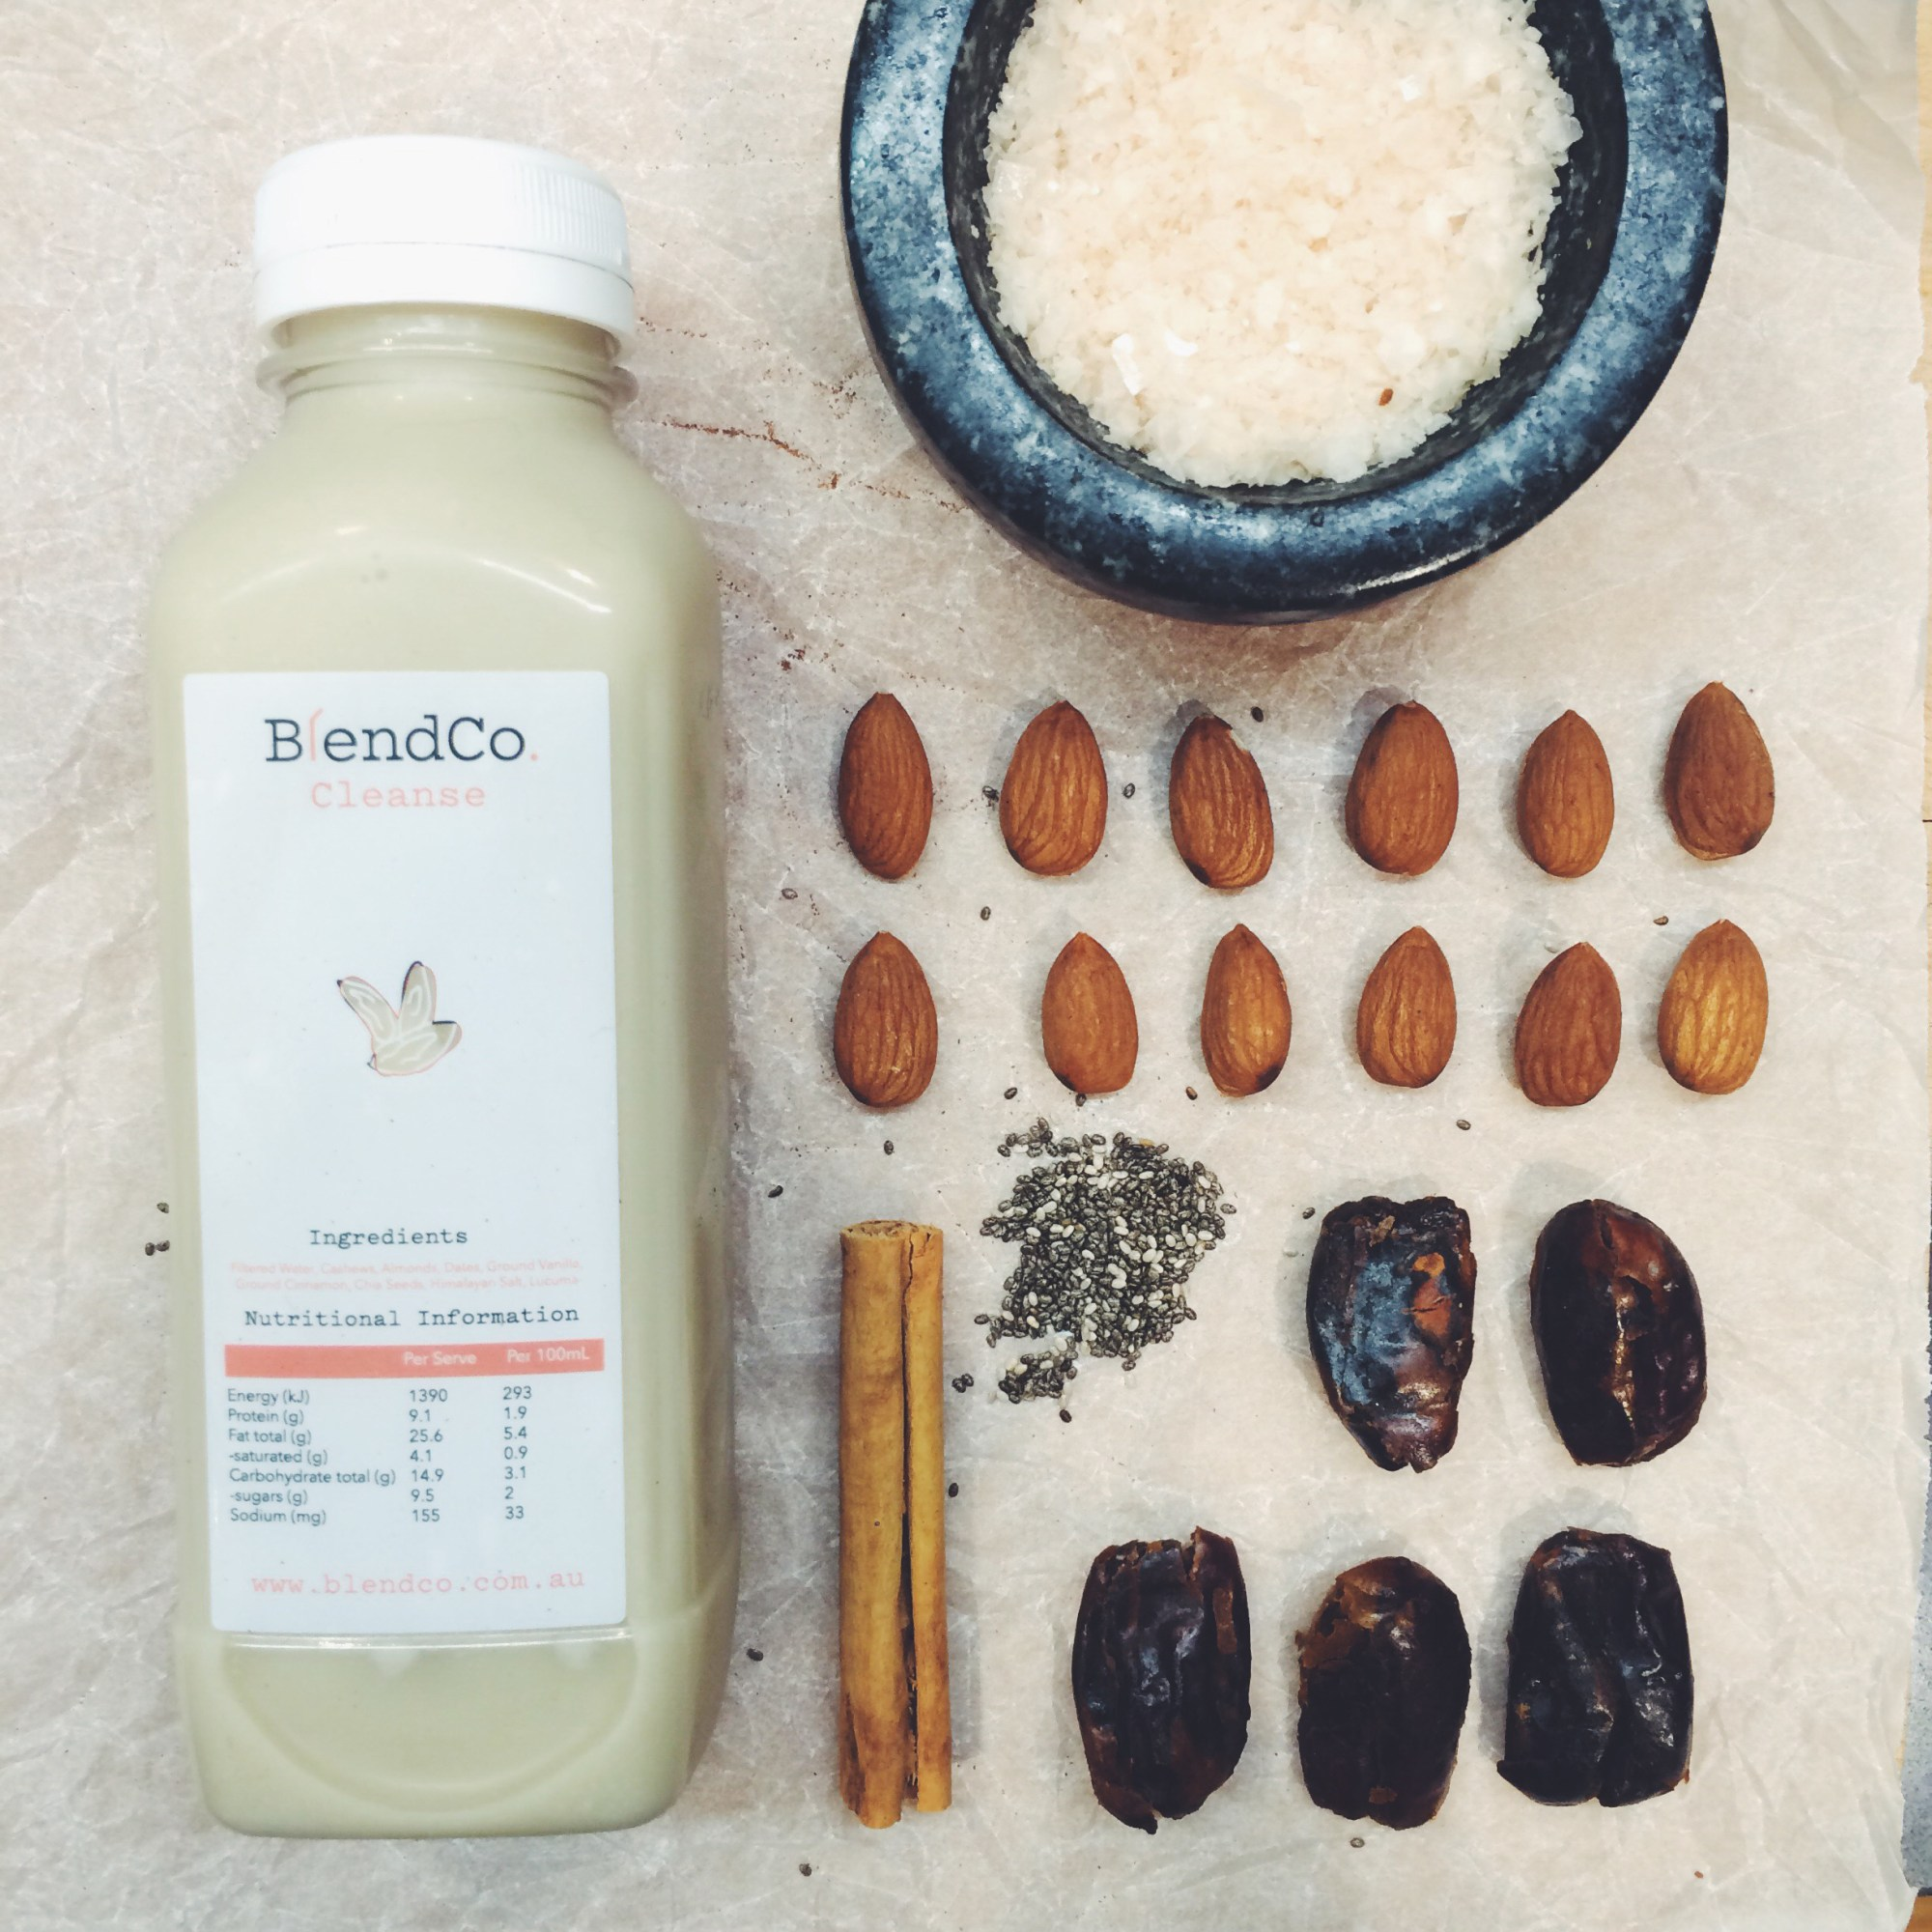 blendco cold pressed 3 day detox juice cleanse melbourne spiced almond